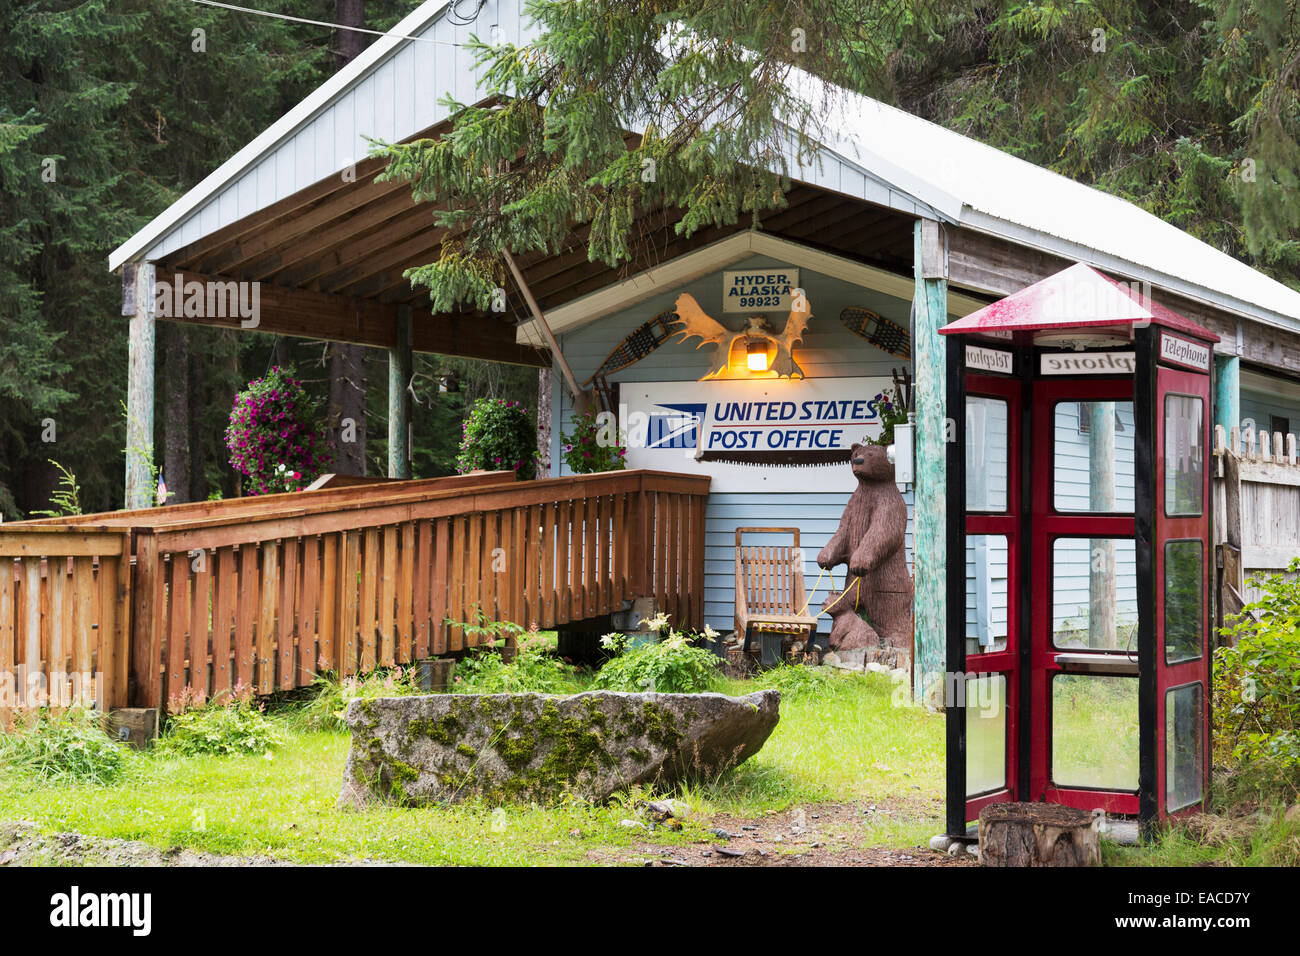 Post office and phone booth; Hyder, Alaska, United States of America - Stock Image